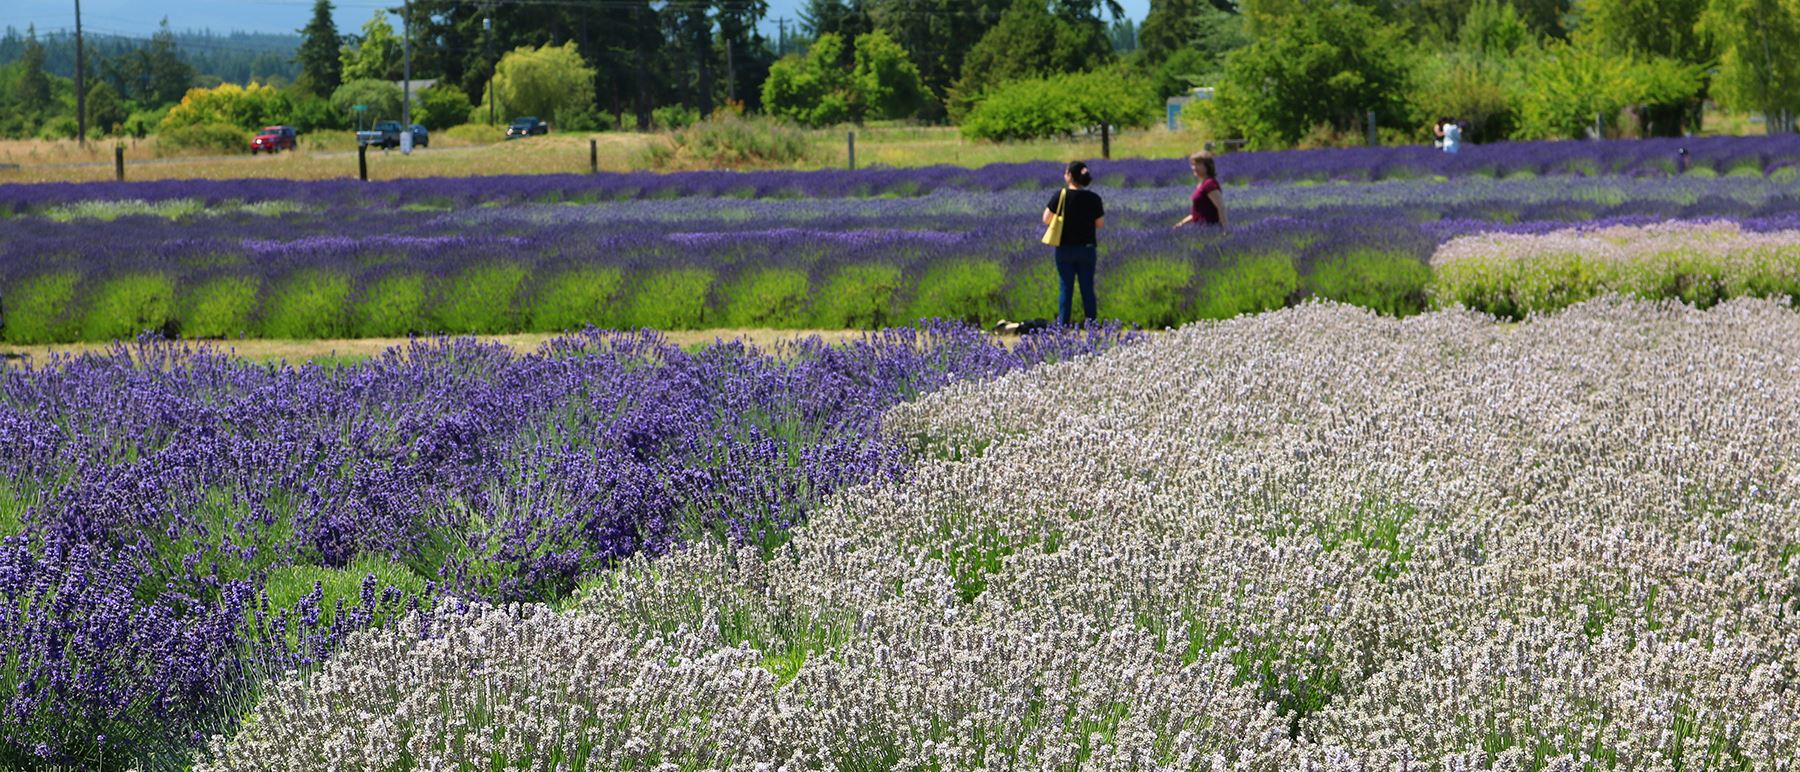 Surrounded by natural beauty and full of small-town charm, Sequim is a popular destination for outdoor enthusiasts and lavender lovers and is one of the driest places in western Washington.  An active